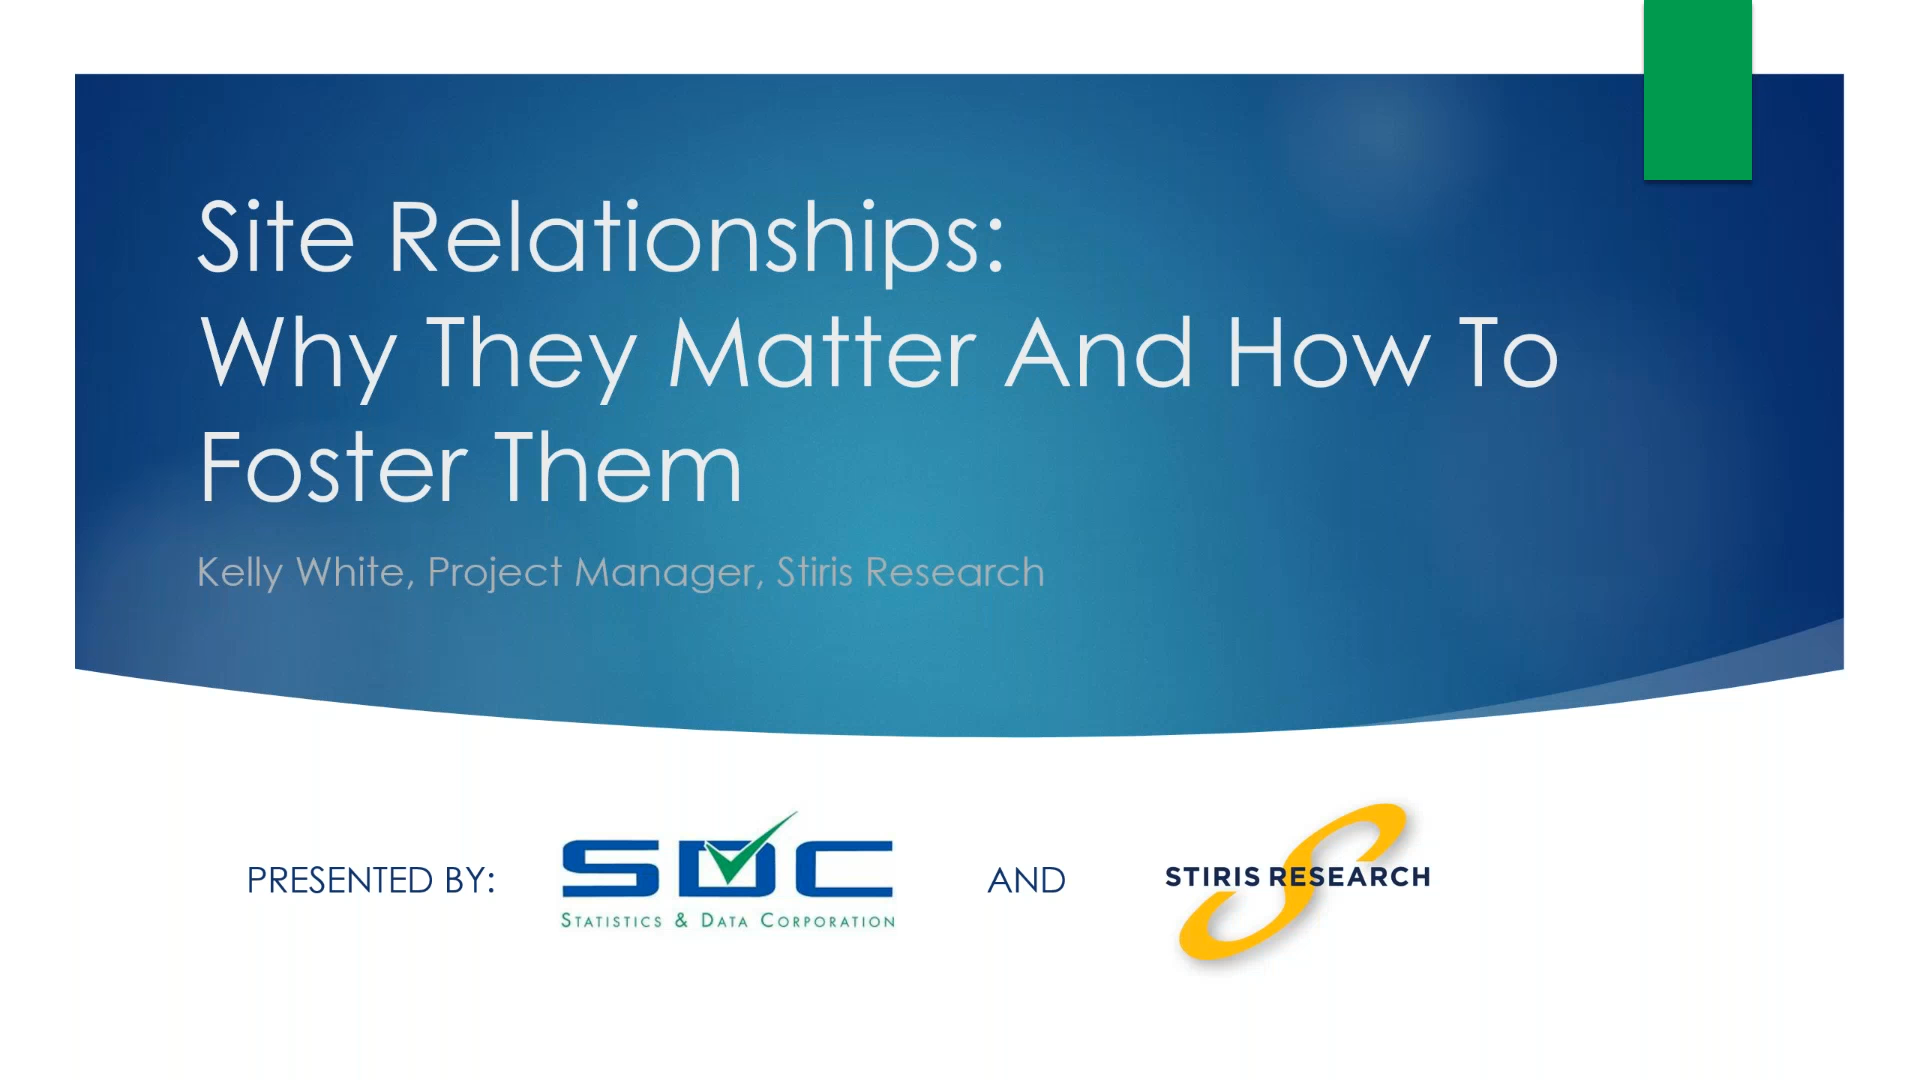 Site_Relationships-Why_They_Matter_and_How_to_Foster_Them_First_Frame.png